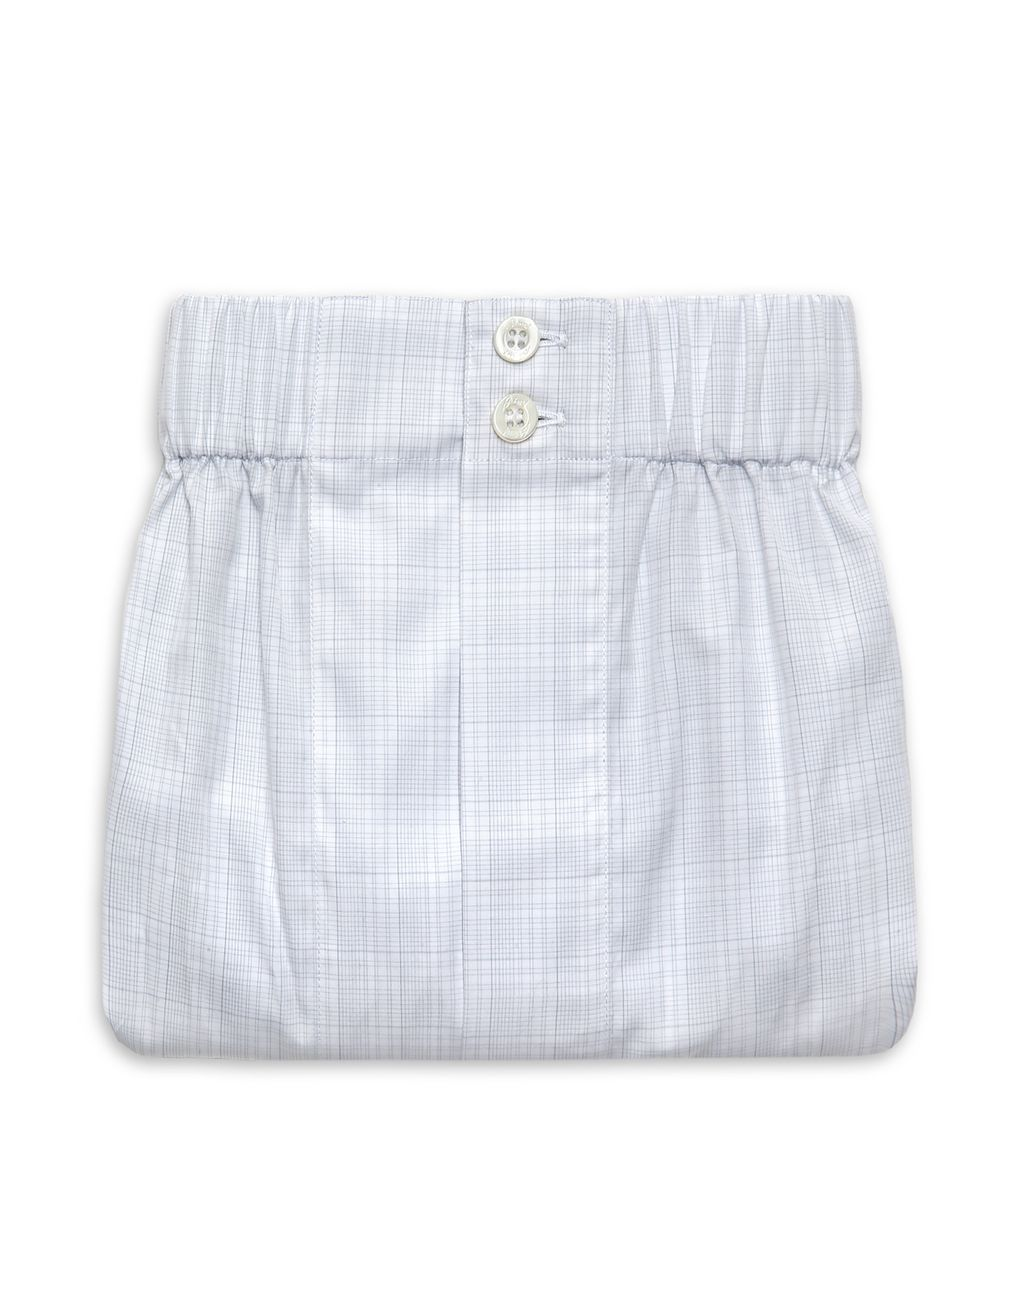 BRIONI Bluette and White Plaid Underwear Underwear [*** pickupInStoreShippingNotGuaranteed_info ***] r